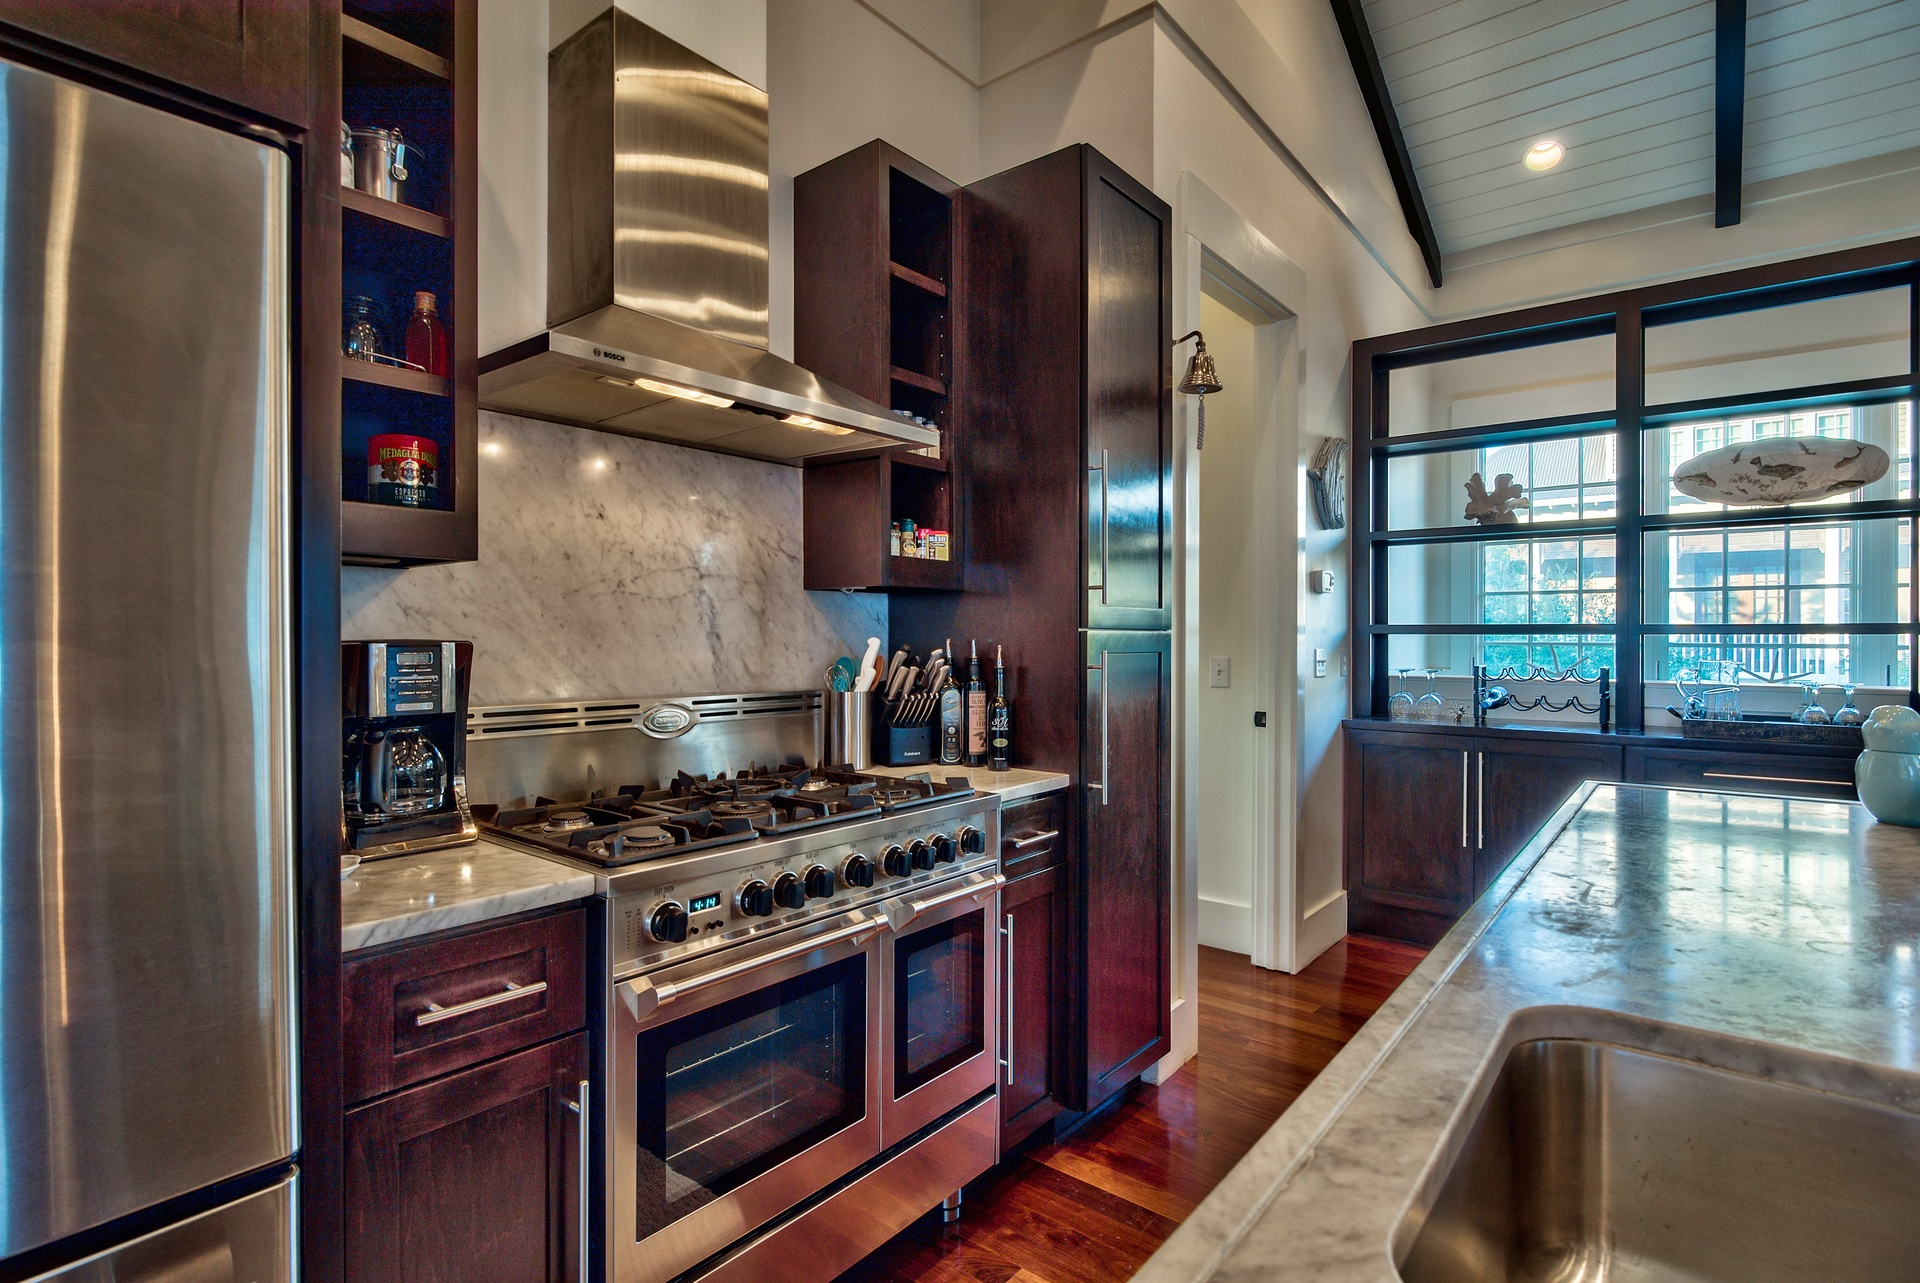 Chef's Kitchen with Granite Countertops and Stainless Appliances